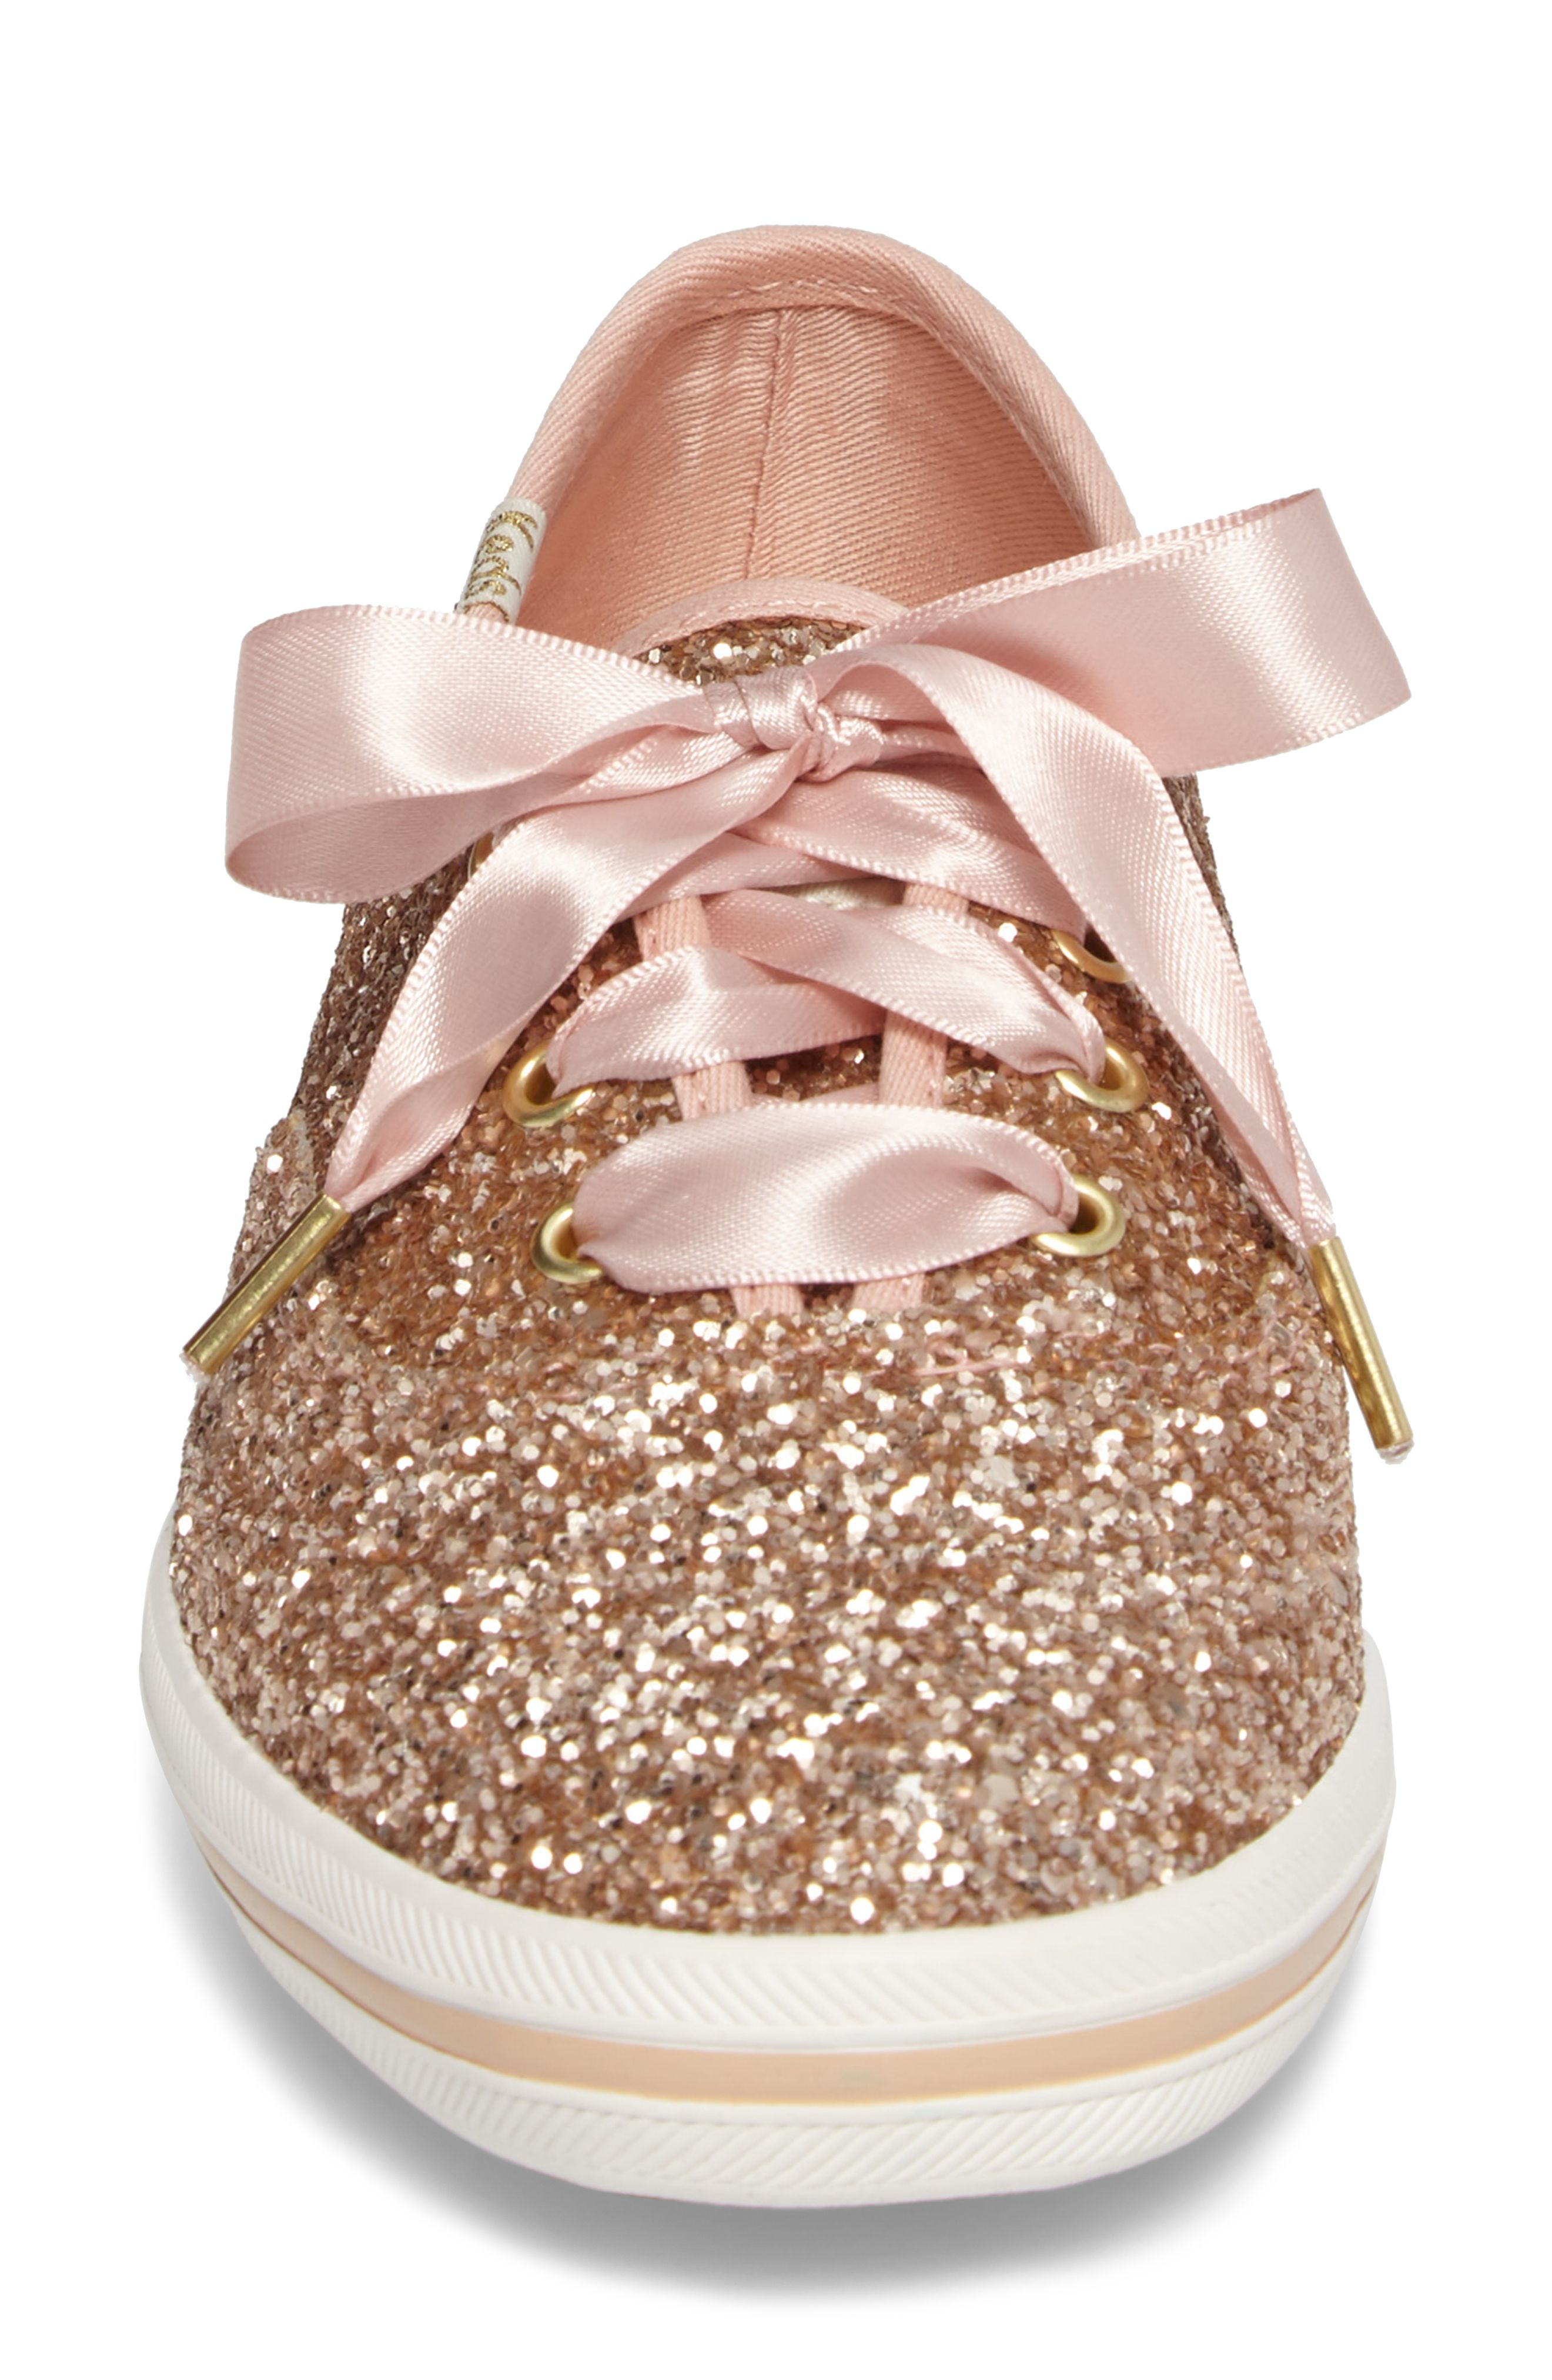 201a68d07eb LOVE this rose gold kate spade x keds sneaker!